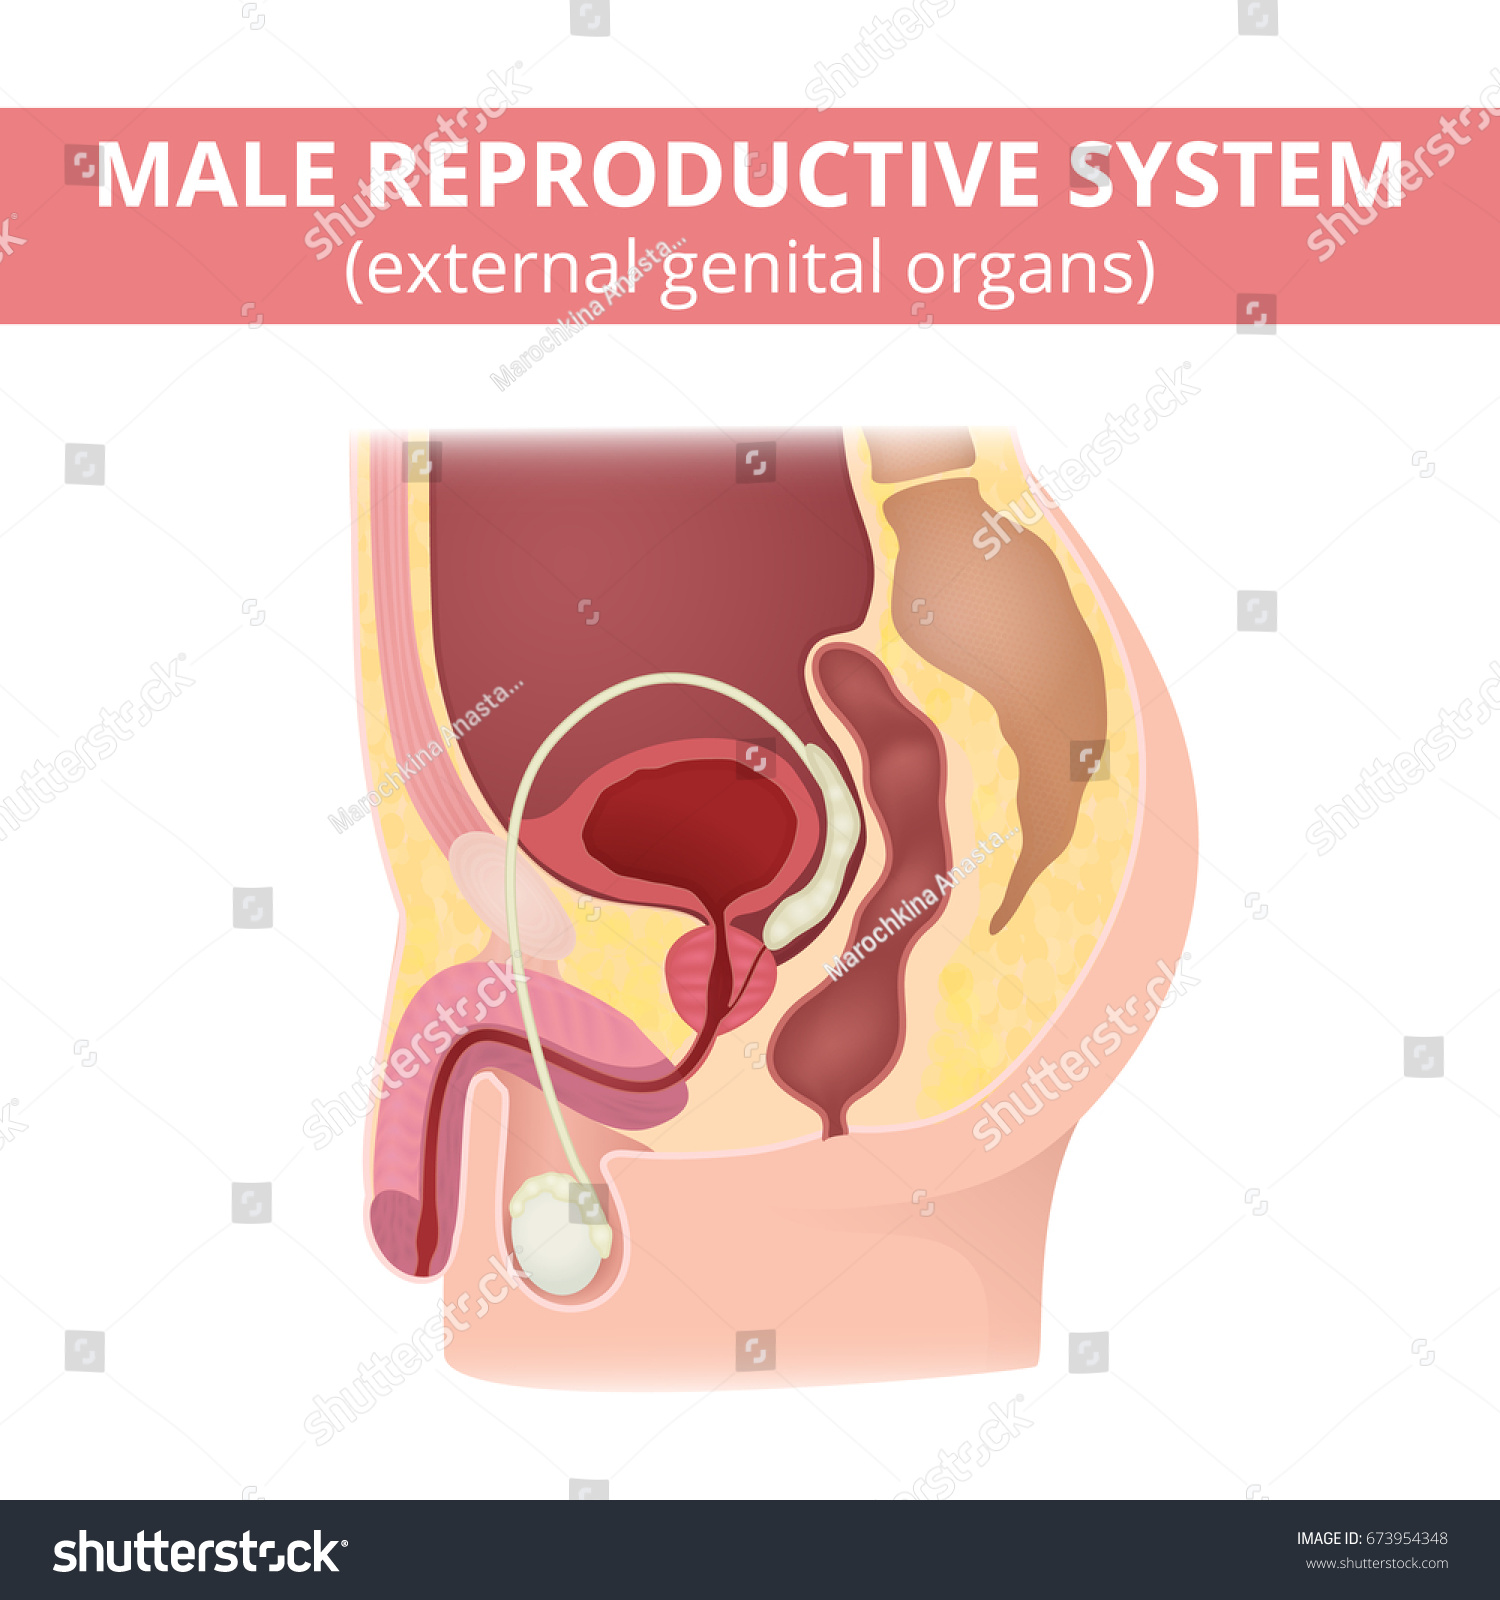 Male Reproductive System Anatomy Male Organs Stock Vector 673954348